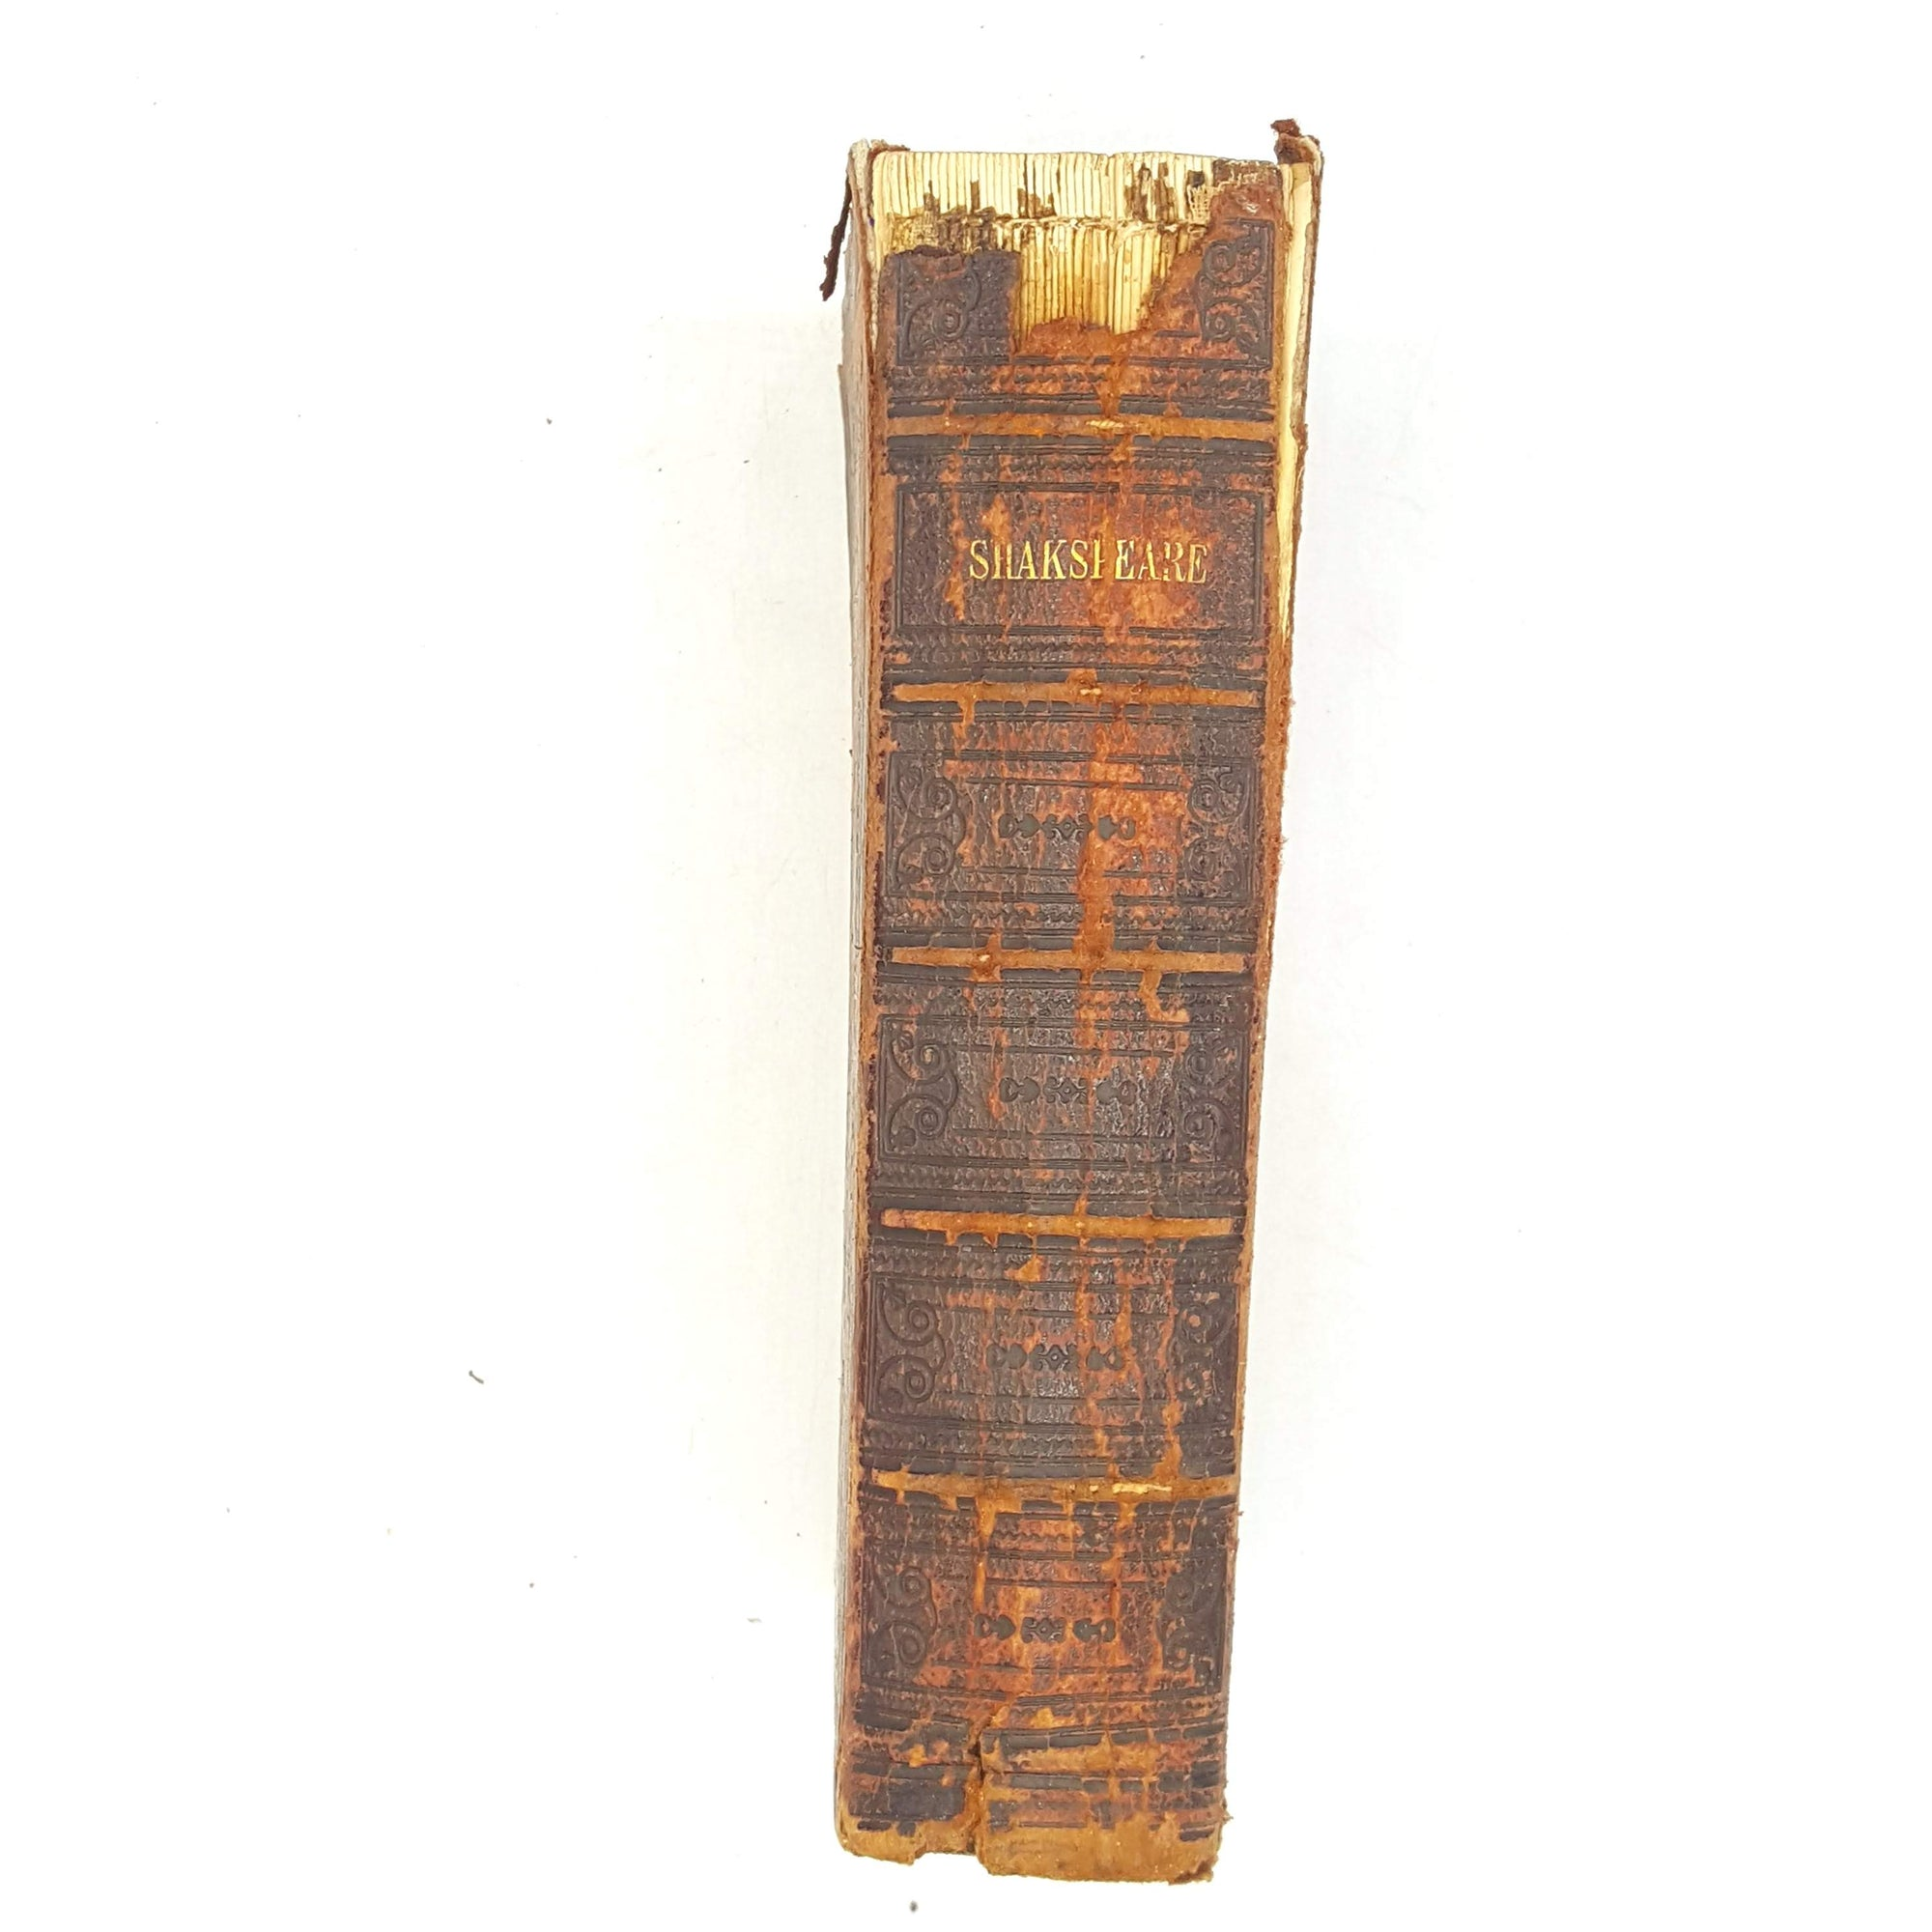 thrift-books-shakespeare-week-antique-poetry-colour-shakespeare-plays-sonnets-country-house-library-old-complete-works-quotes-brown-1859-england-prose-writing-